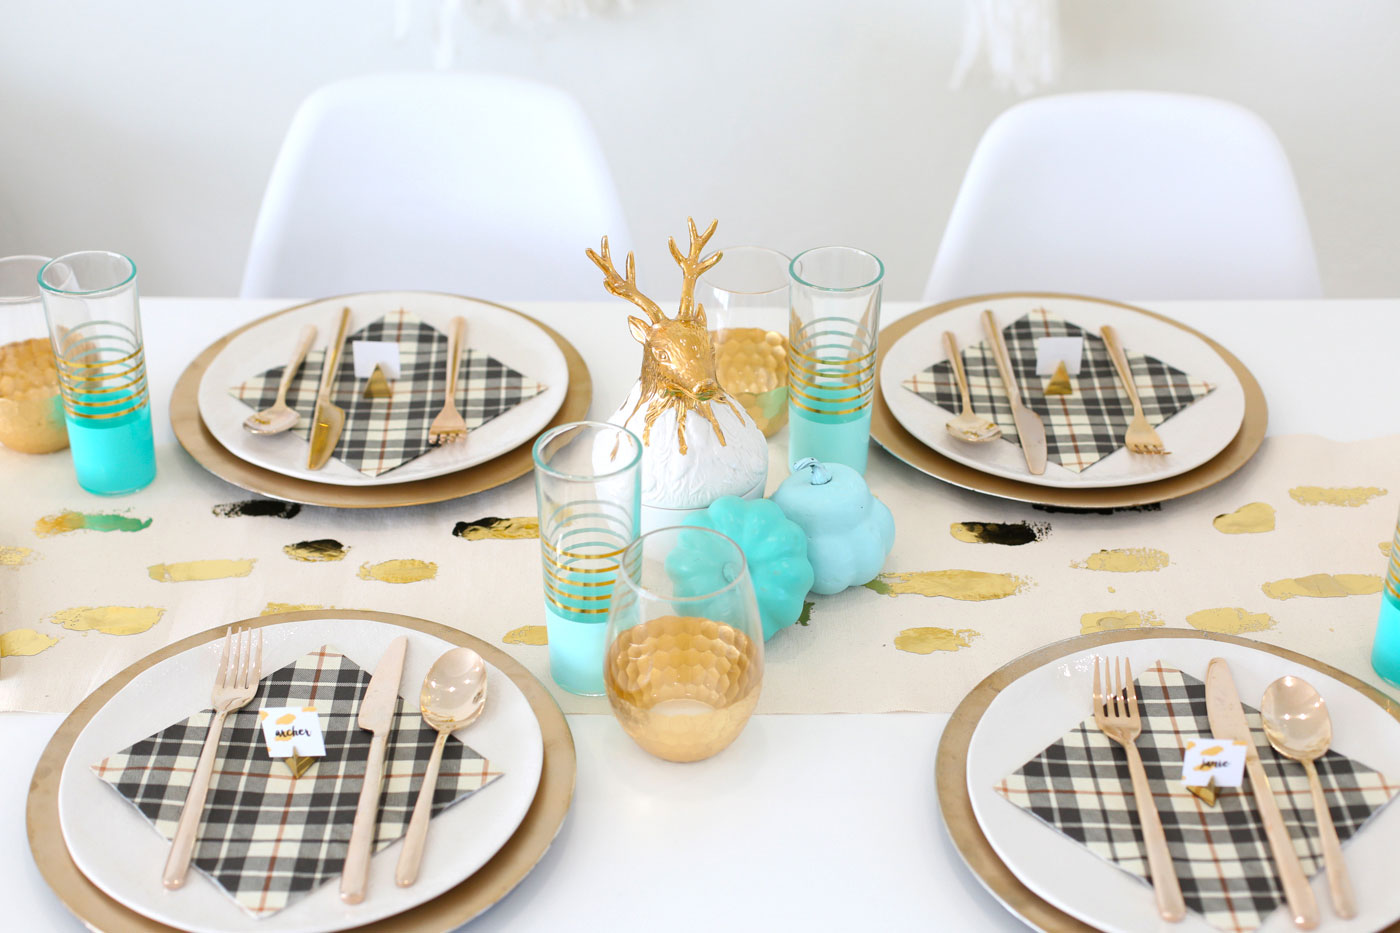 These DIY printable place cards help your guests know who sits where, can make for awesome conversation and help people feel more comfortable.